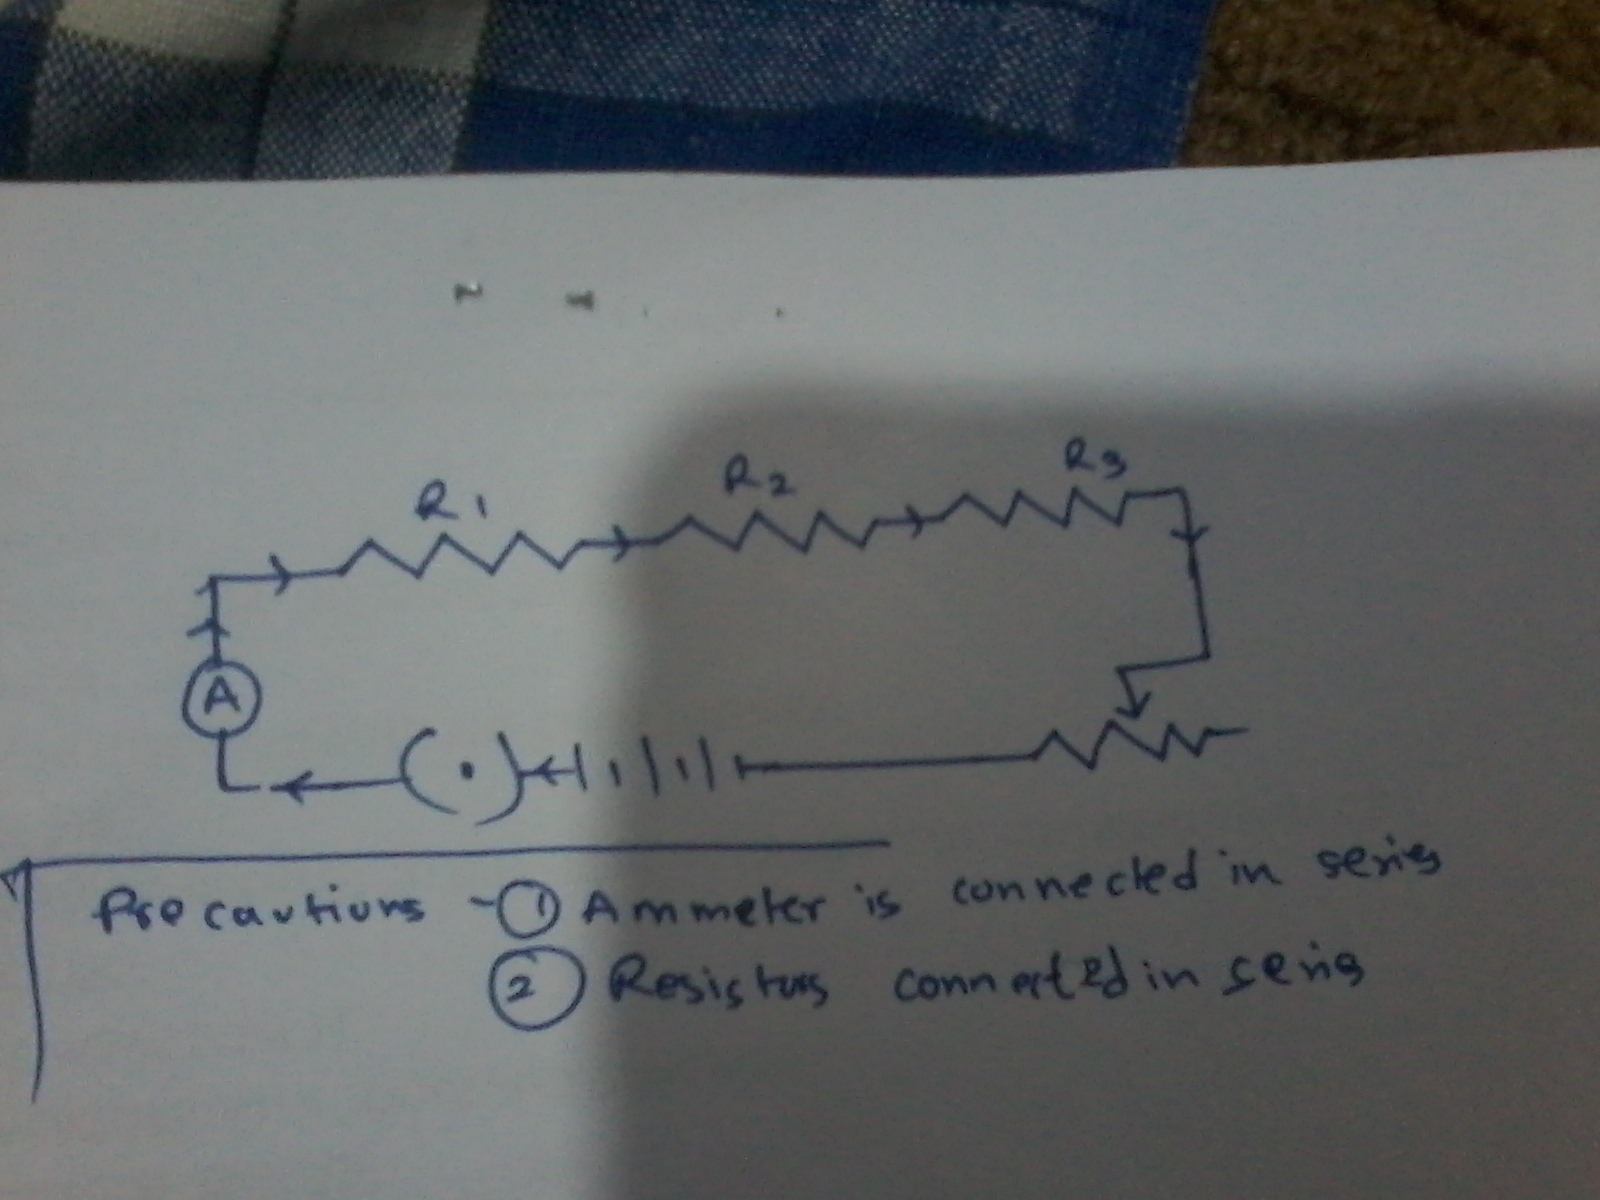 Draw A Labelled Circuit Diagram Showing Three Resistors R1 R2 And In Diagrams Or Schematics There Are Two Symbols For Download